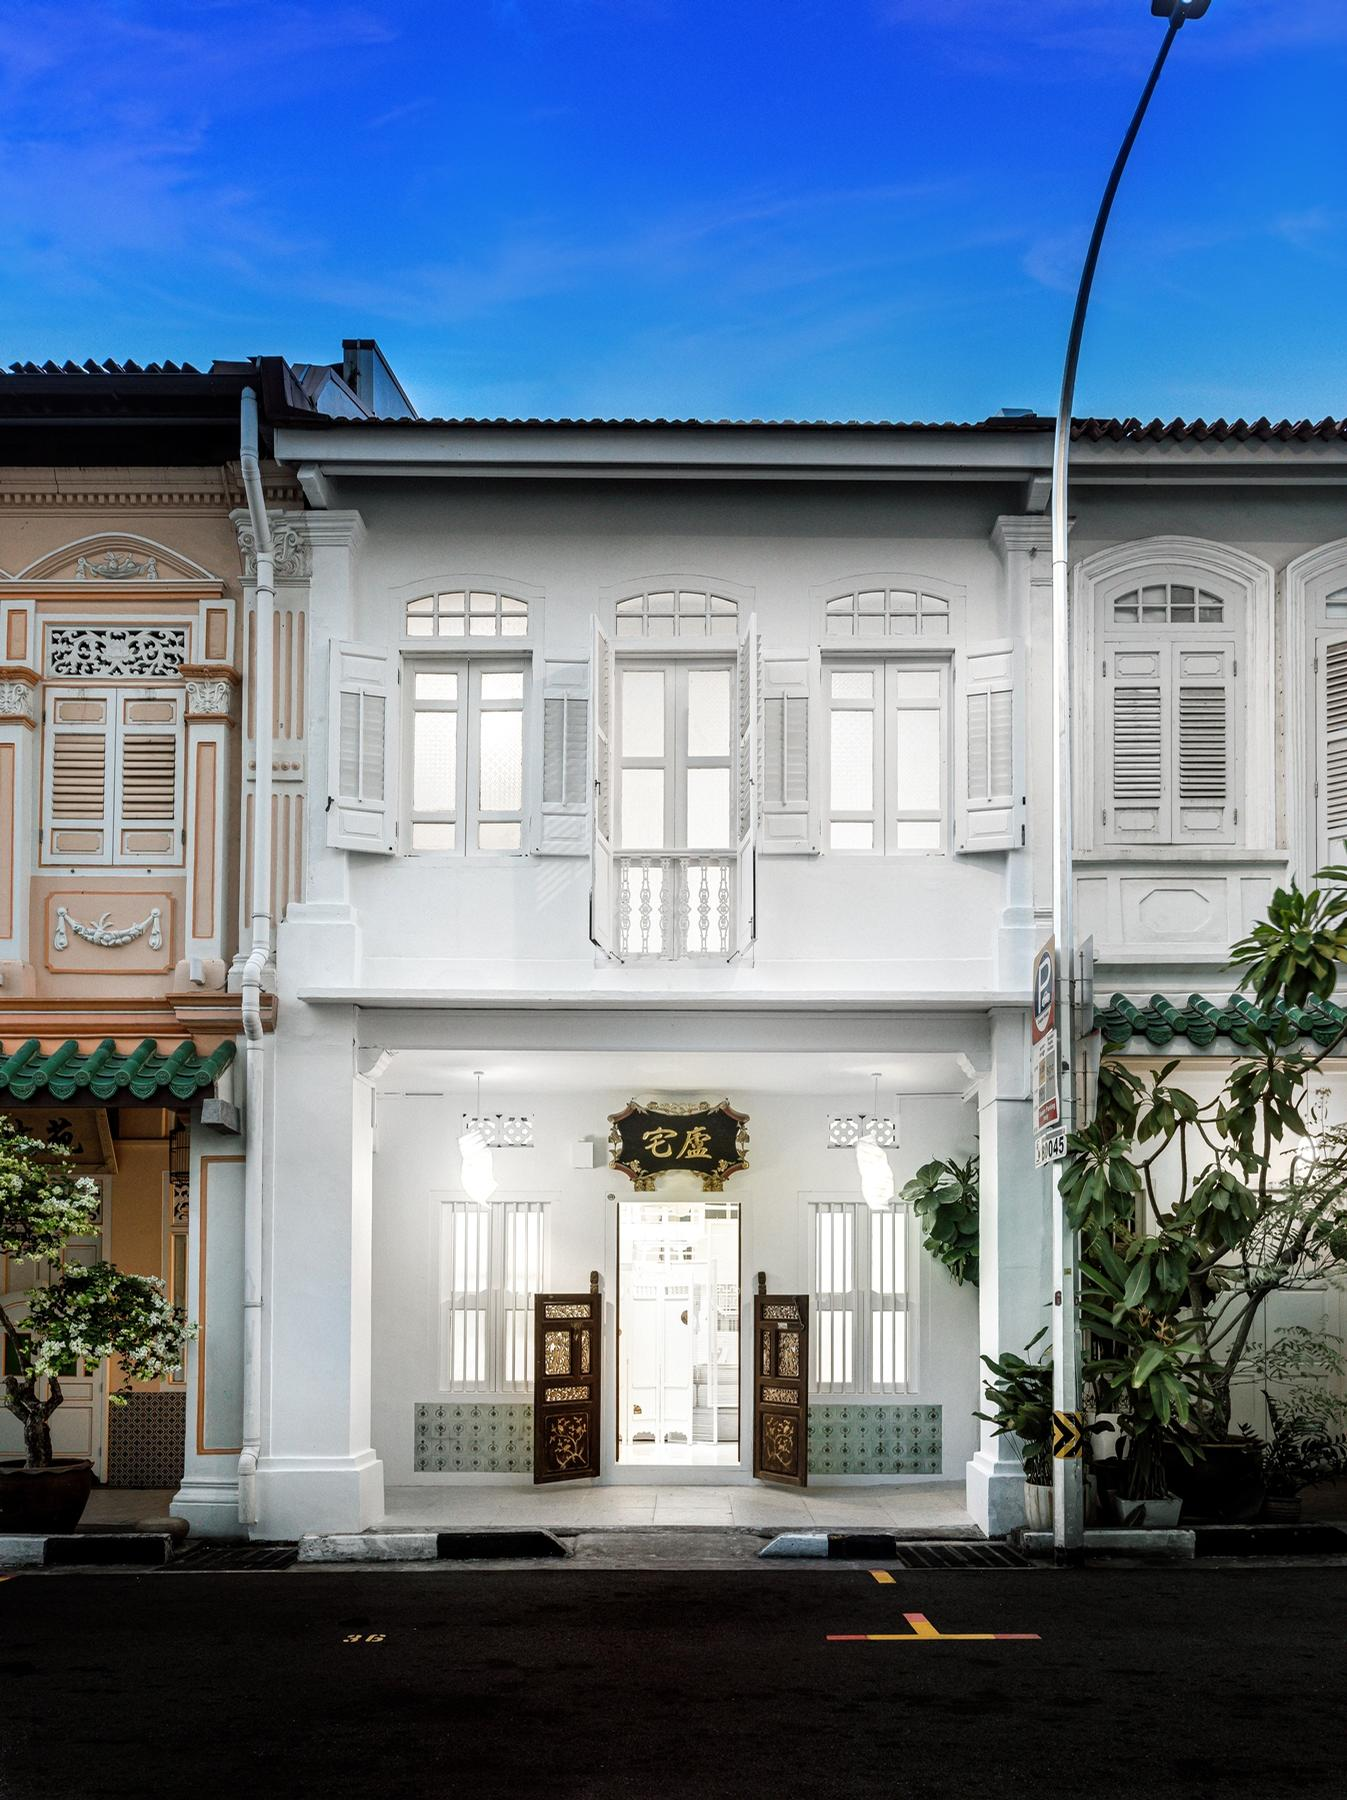 Canvas House is set in a heritage shophouse in Singapore / Edward Hendricks, CI&A Photography